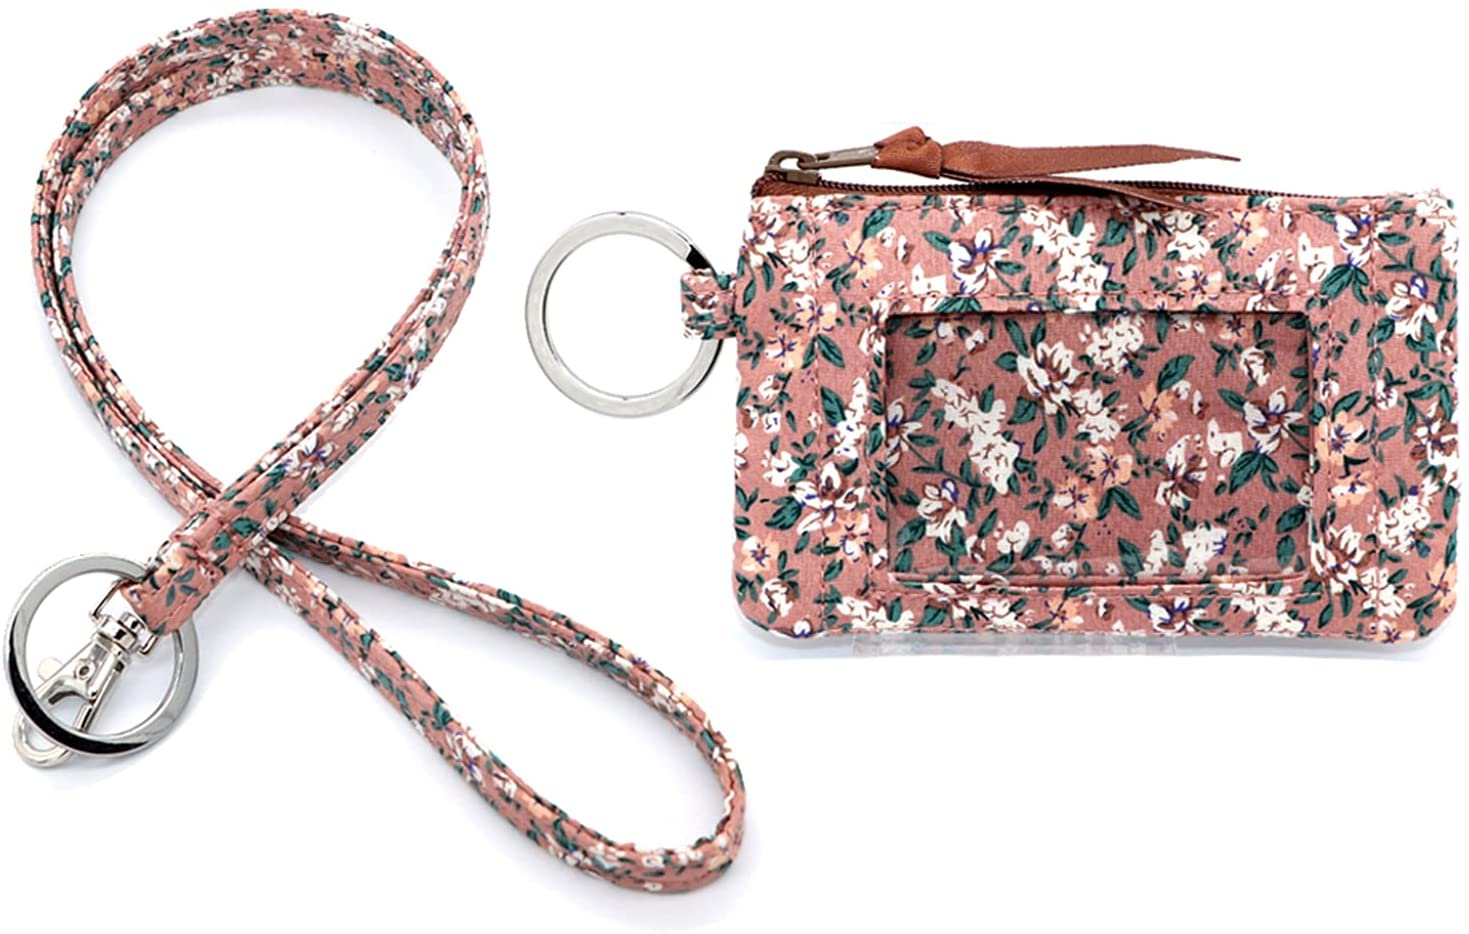 Lanyard with Zip Id Case